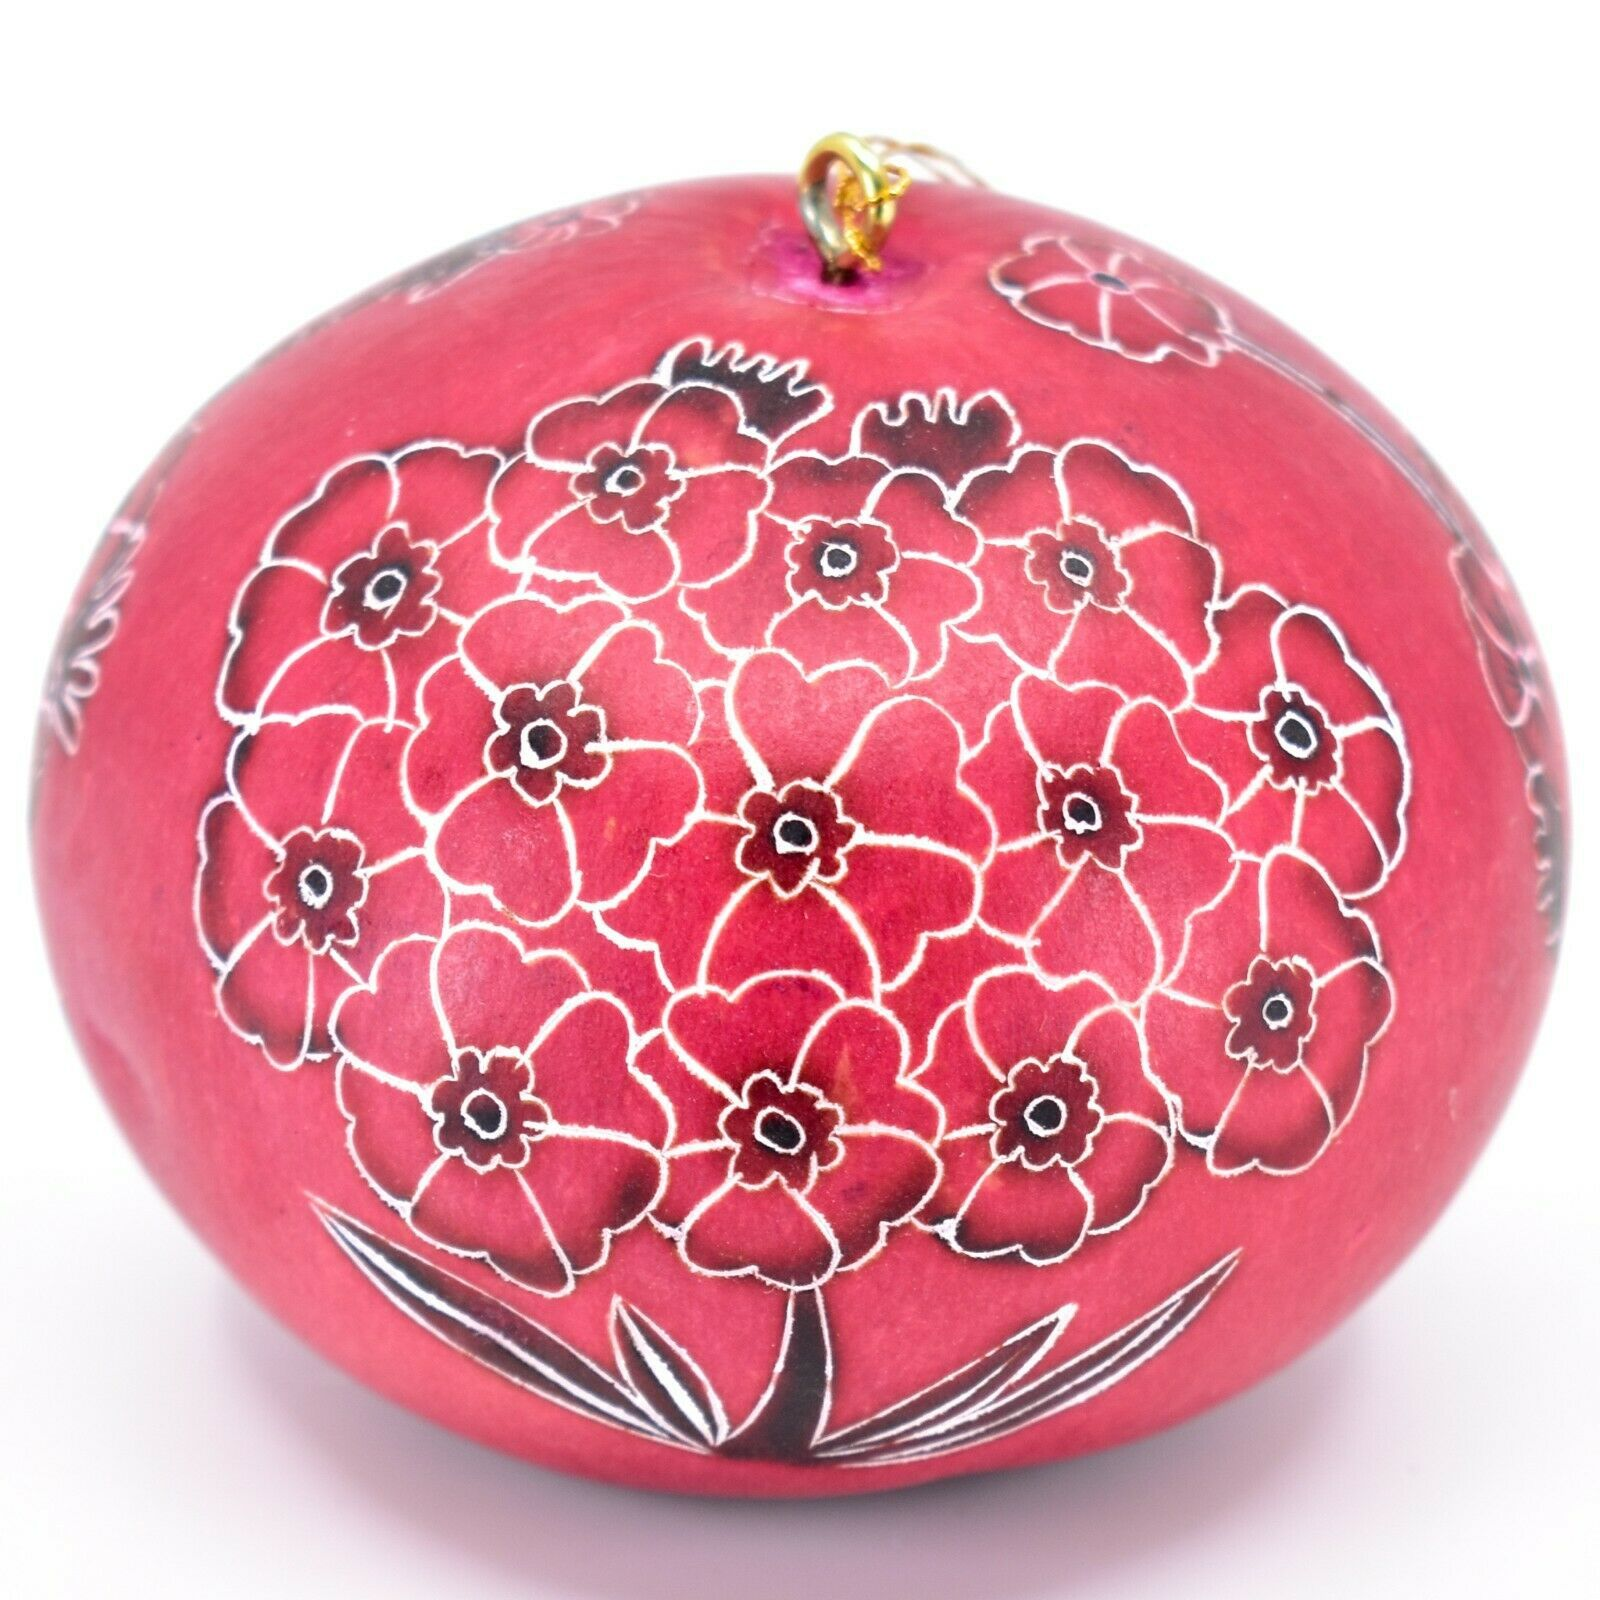 Handcrafted Carved Gourd Art Red Primose Flower Floral Ornament Made in Peru